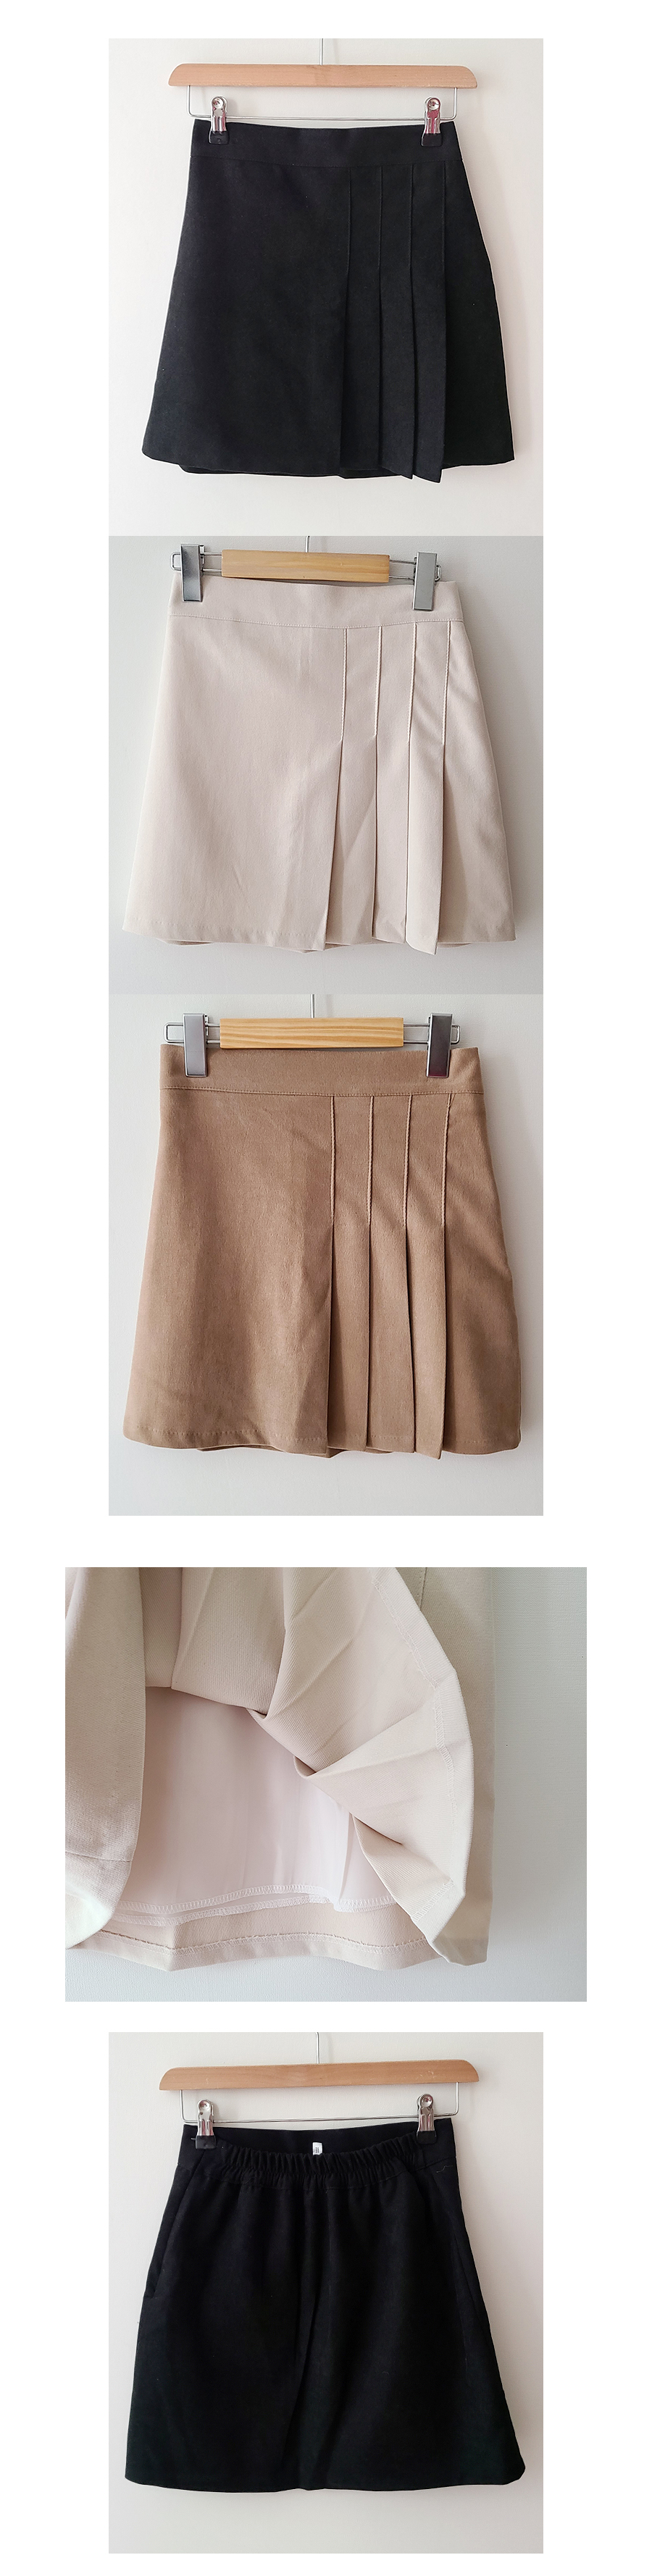 Biscuit pintuck pleated skirt